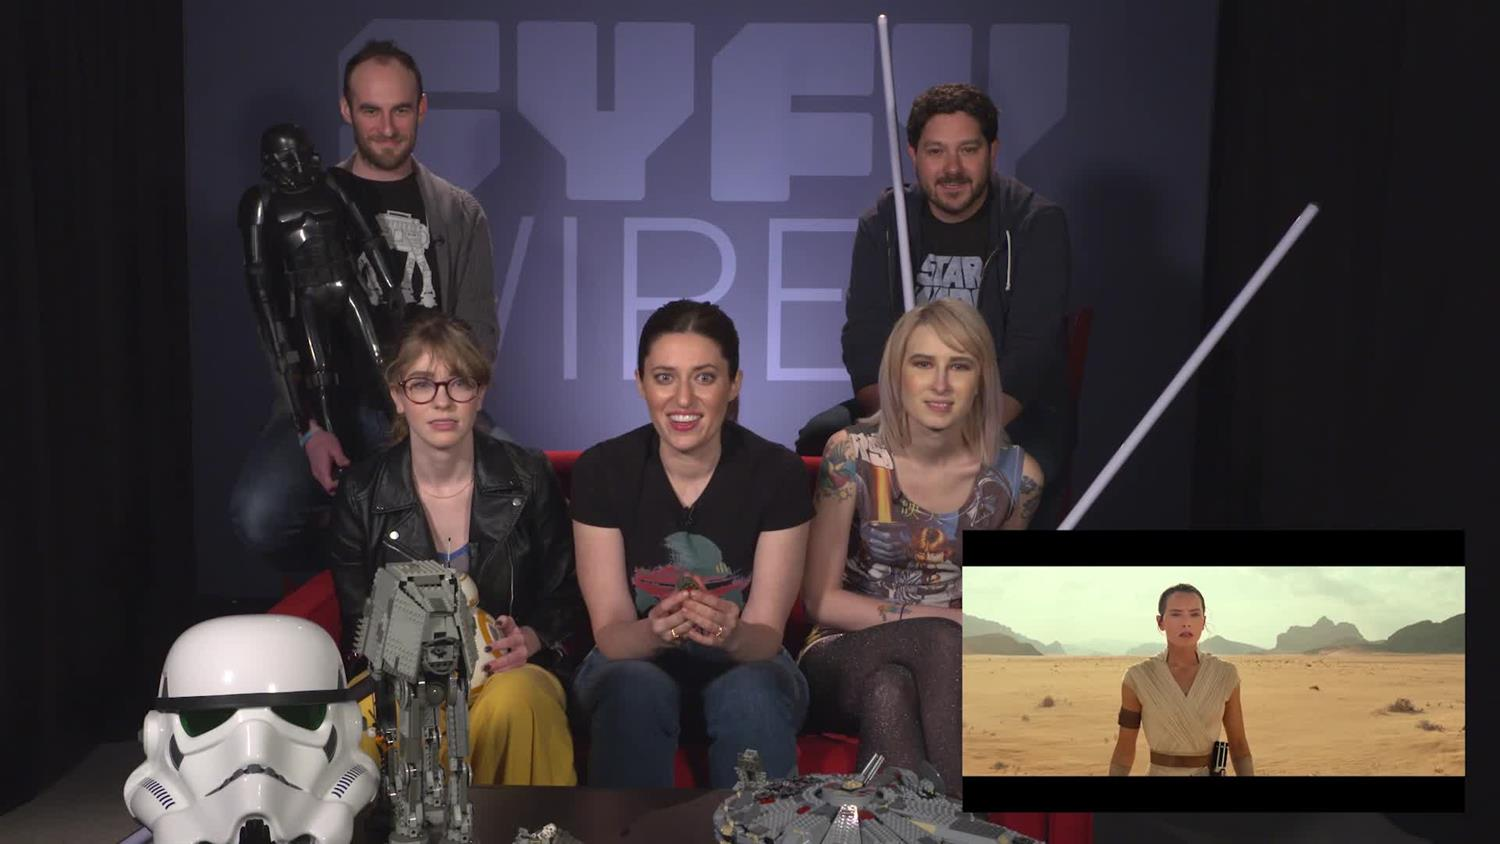 SYFY WIRE Reacts To Star Wars: Episode IX - The Rise of Skywalker Trailer